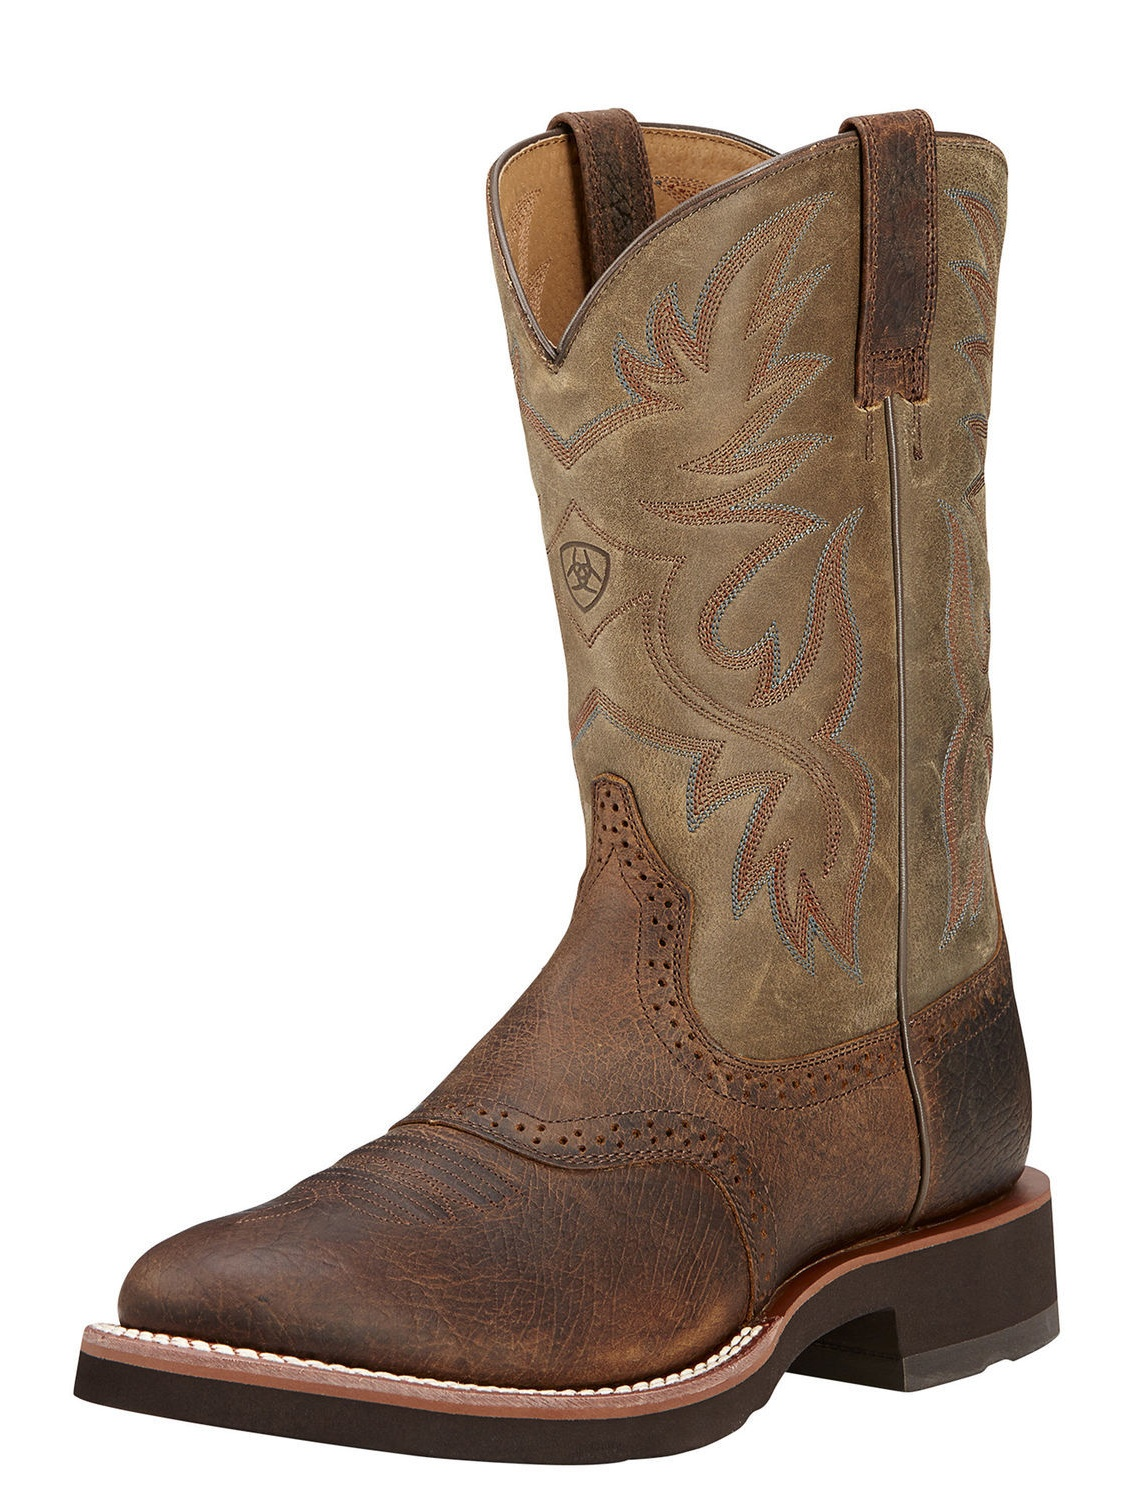 Ariat Heritage Crepe Men Round Toe Leather Brown Western Boot by Ariat